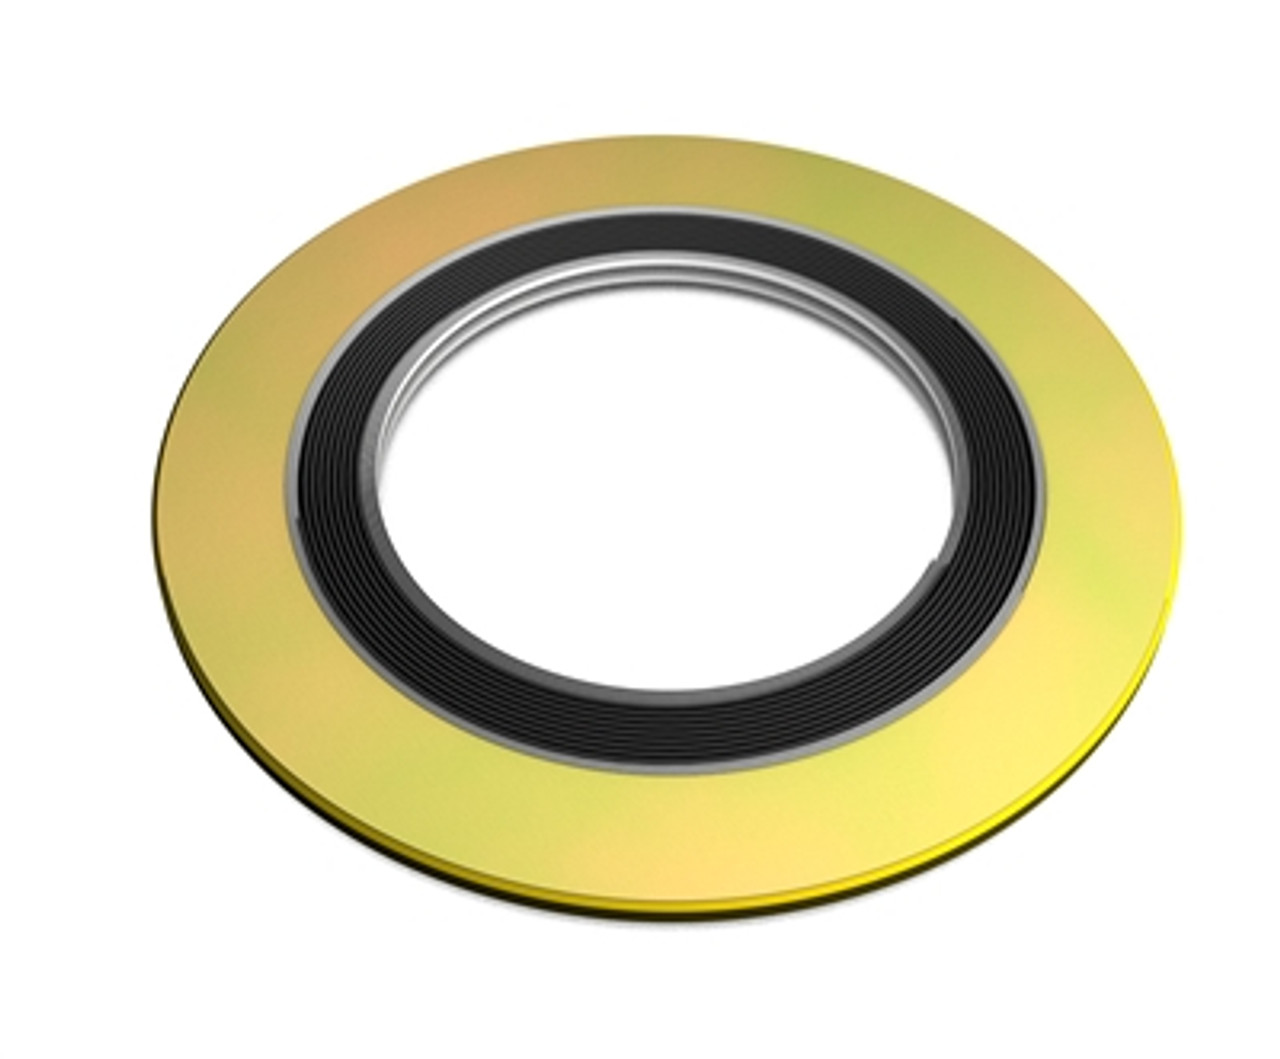 0.81 ID Pressure Class 300# Pack of 96 Sterling Seal SSI9000IR.750304GR300X96 304 Stainless Steel Spiral Wound Gasket with 304SS Inner Ring and Flexible Graphite Filler for 3//4 Pipe 2.625 OD